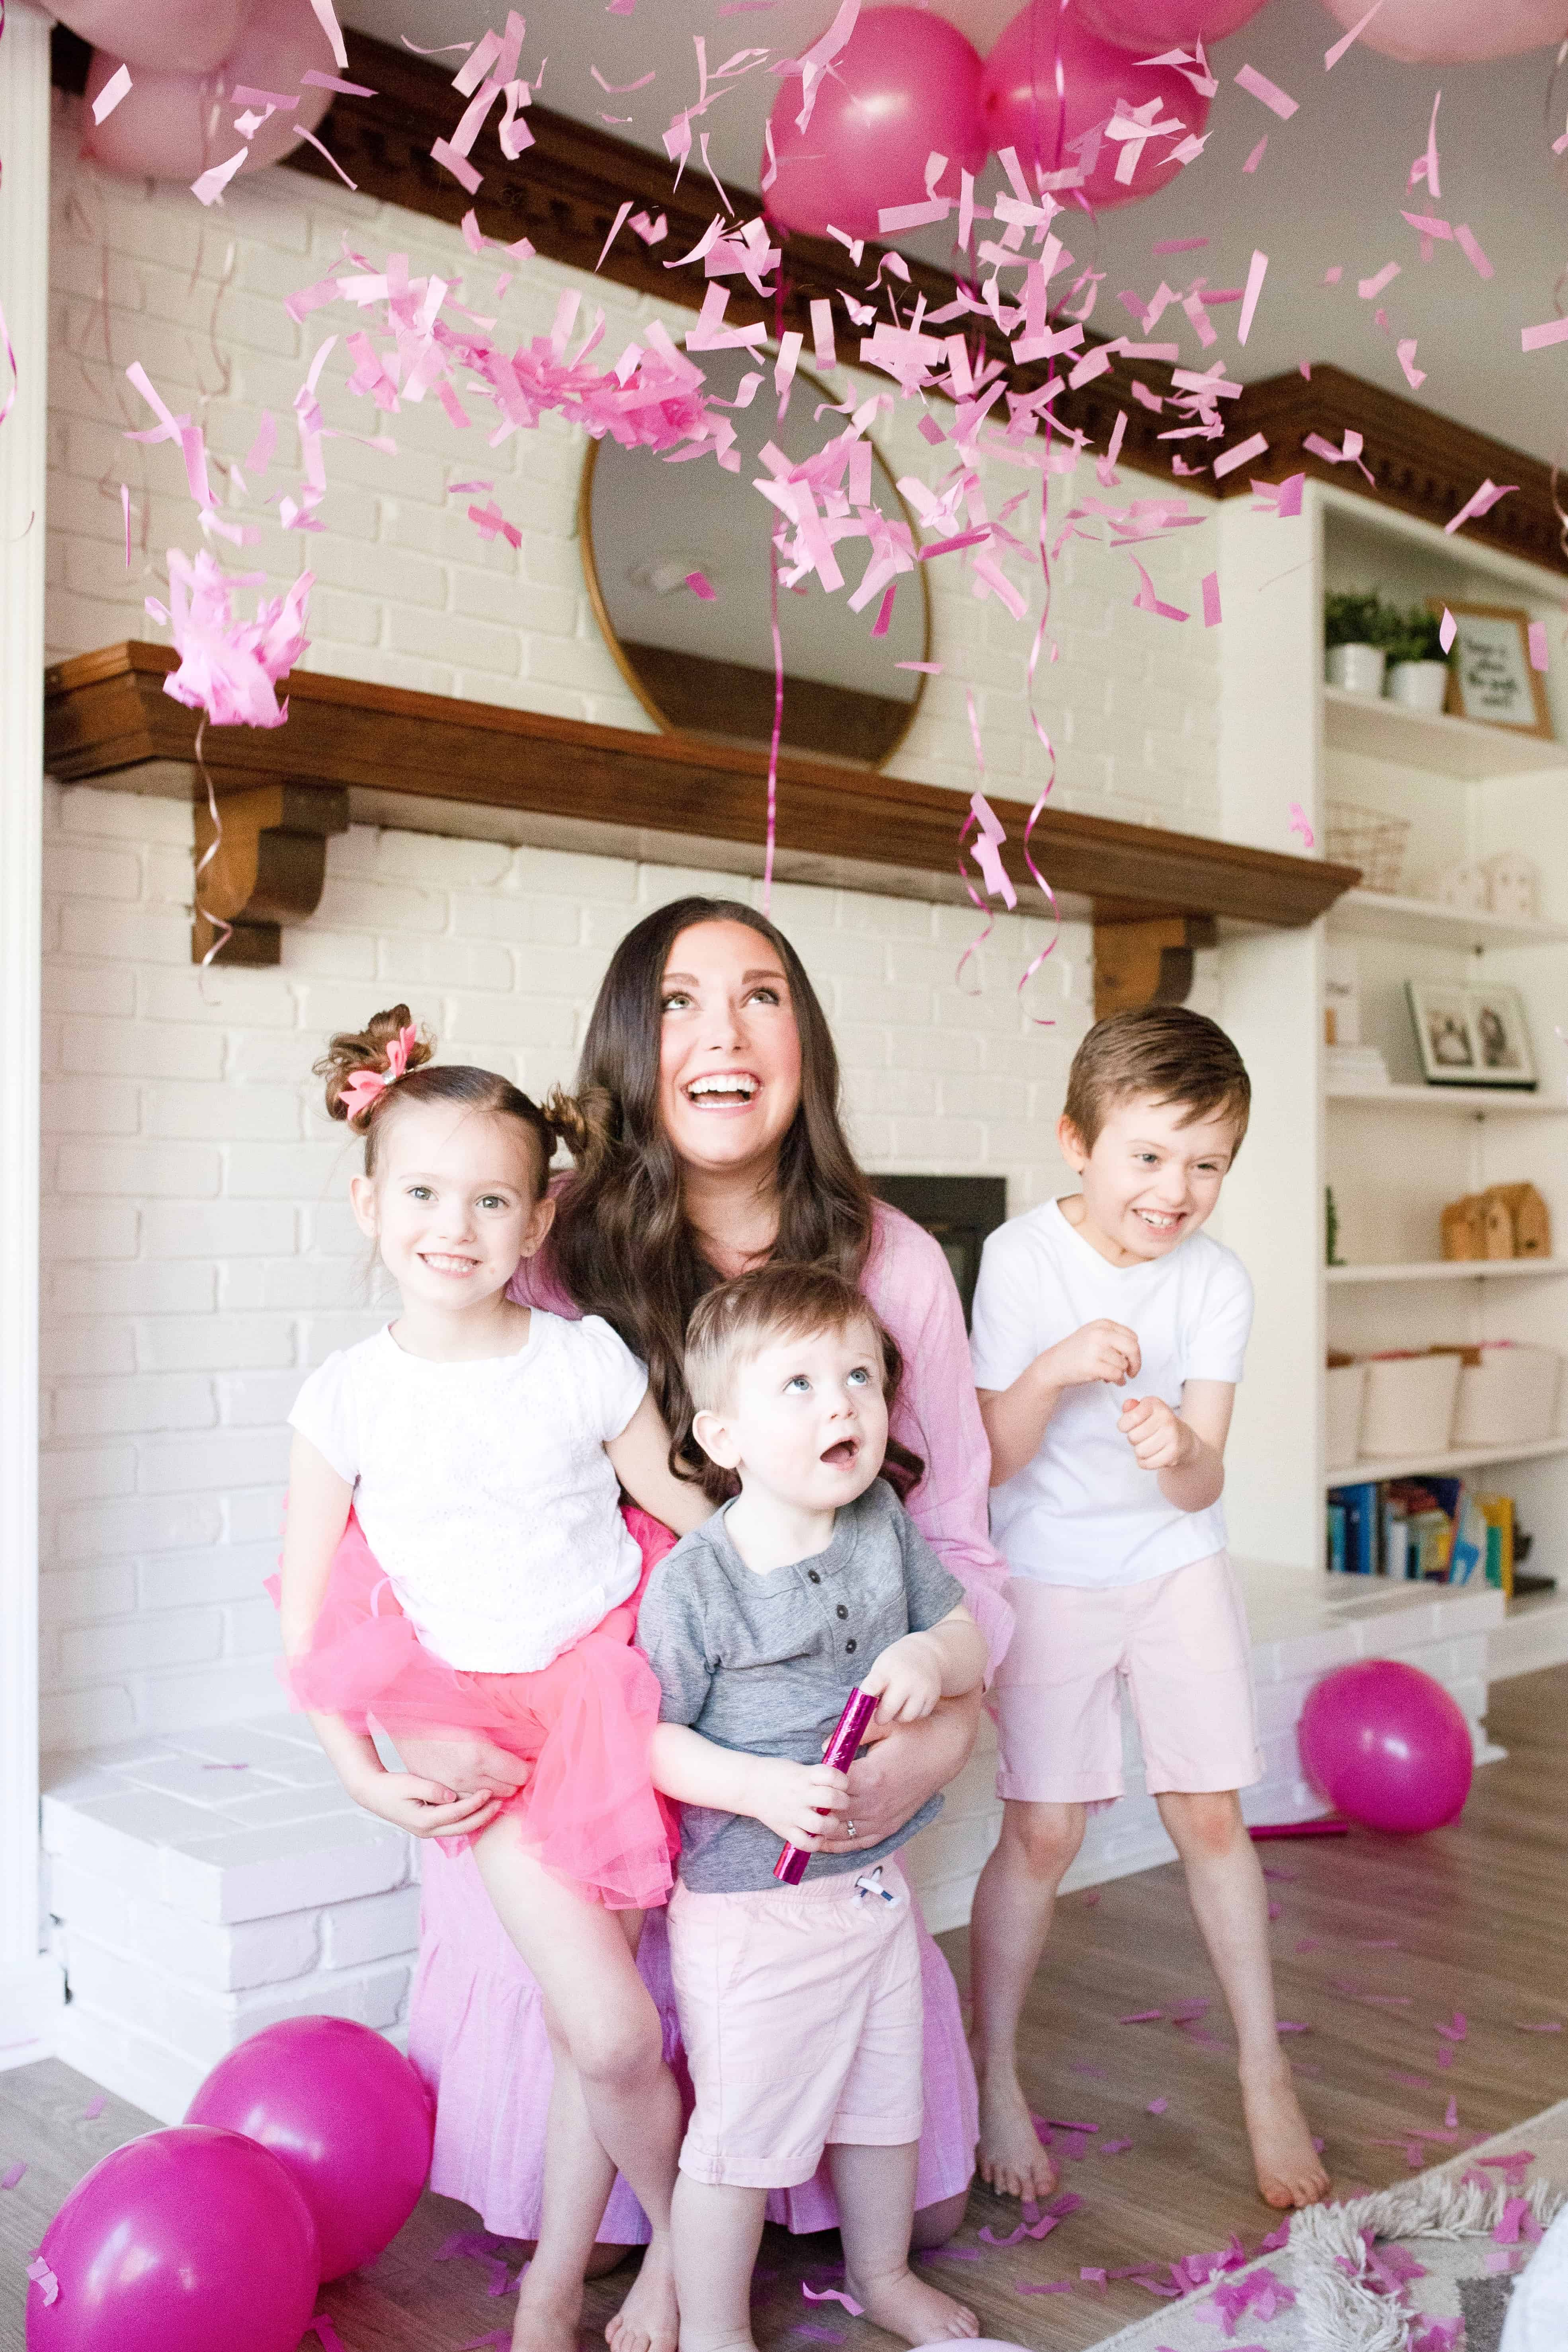 Mom with 3 kids in pink surrounded by pink confetti and balloons